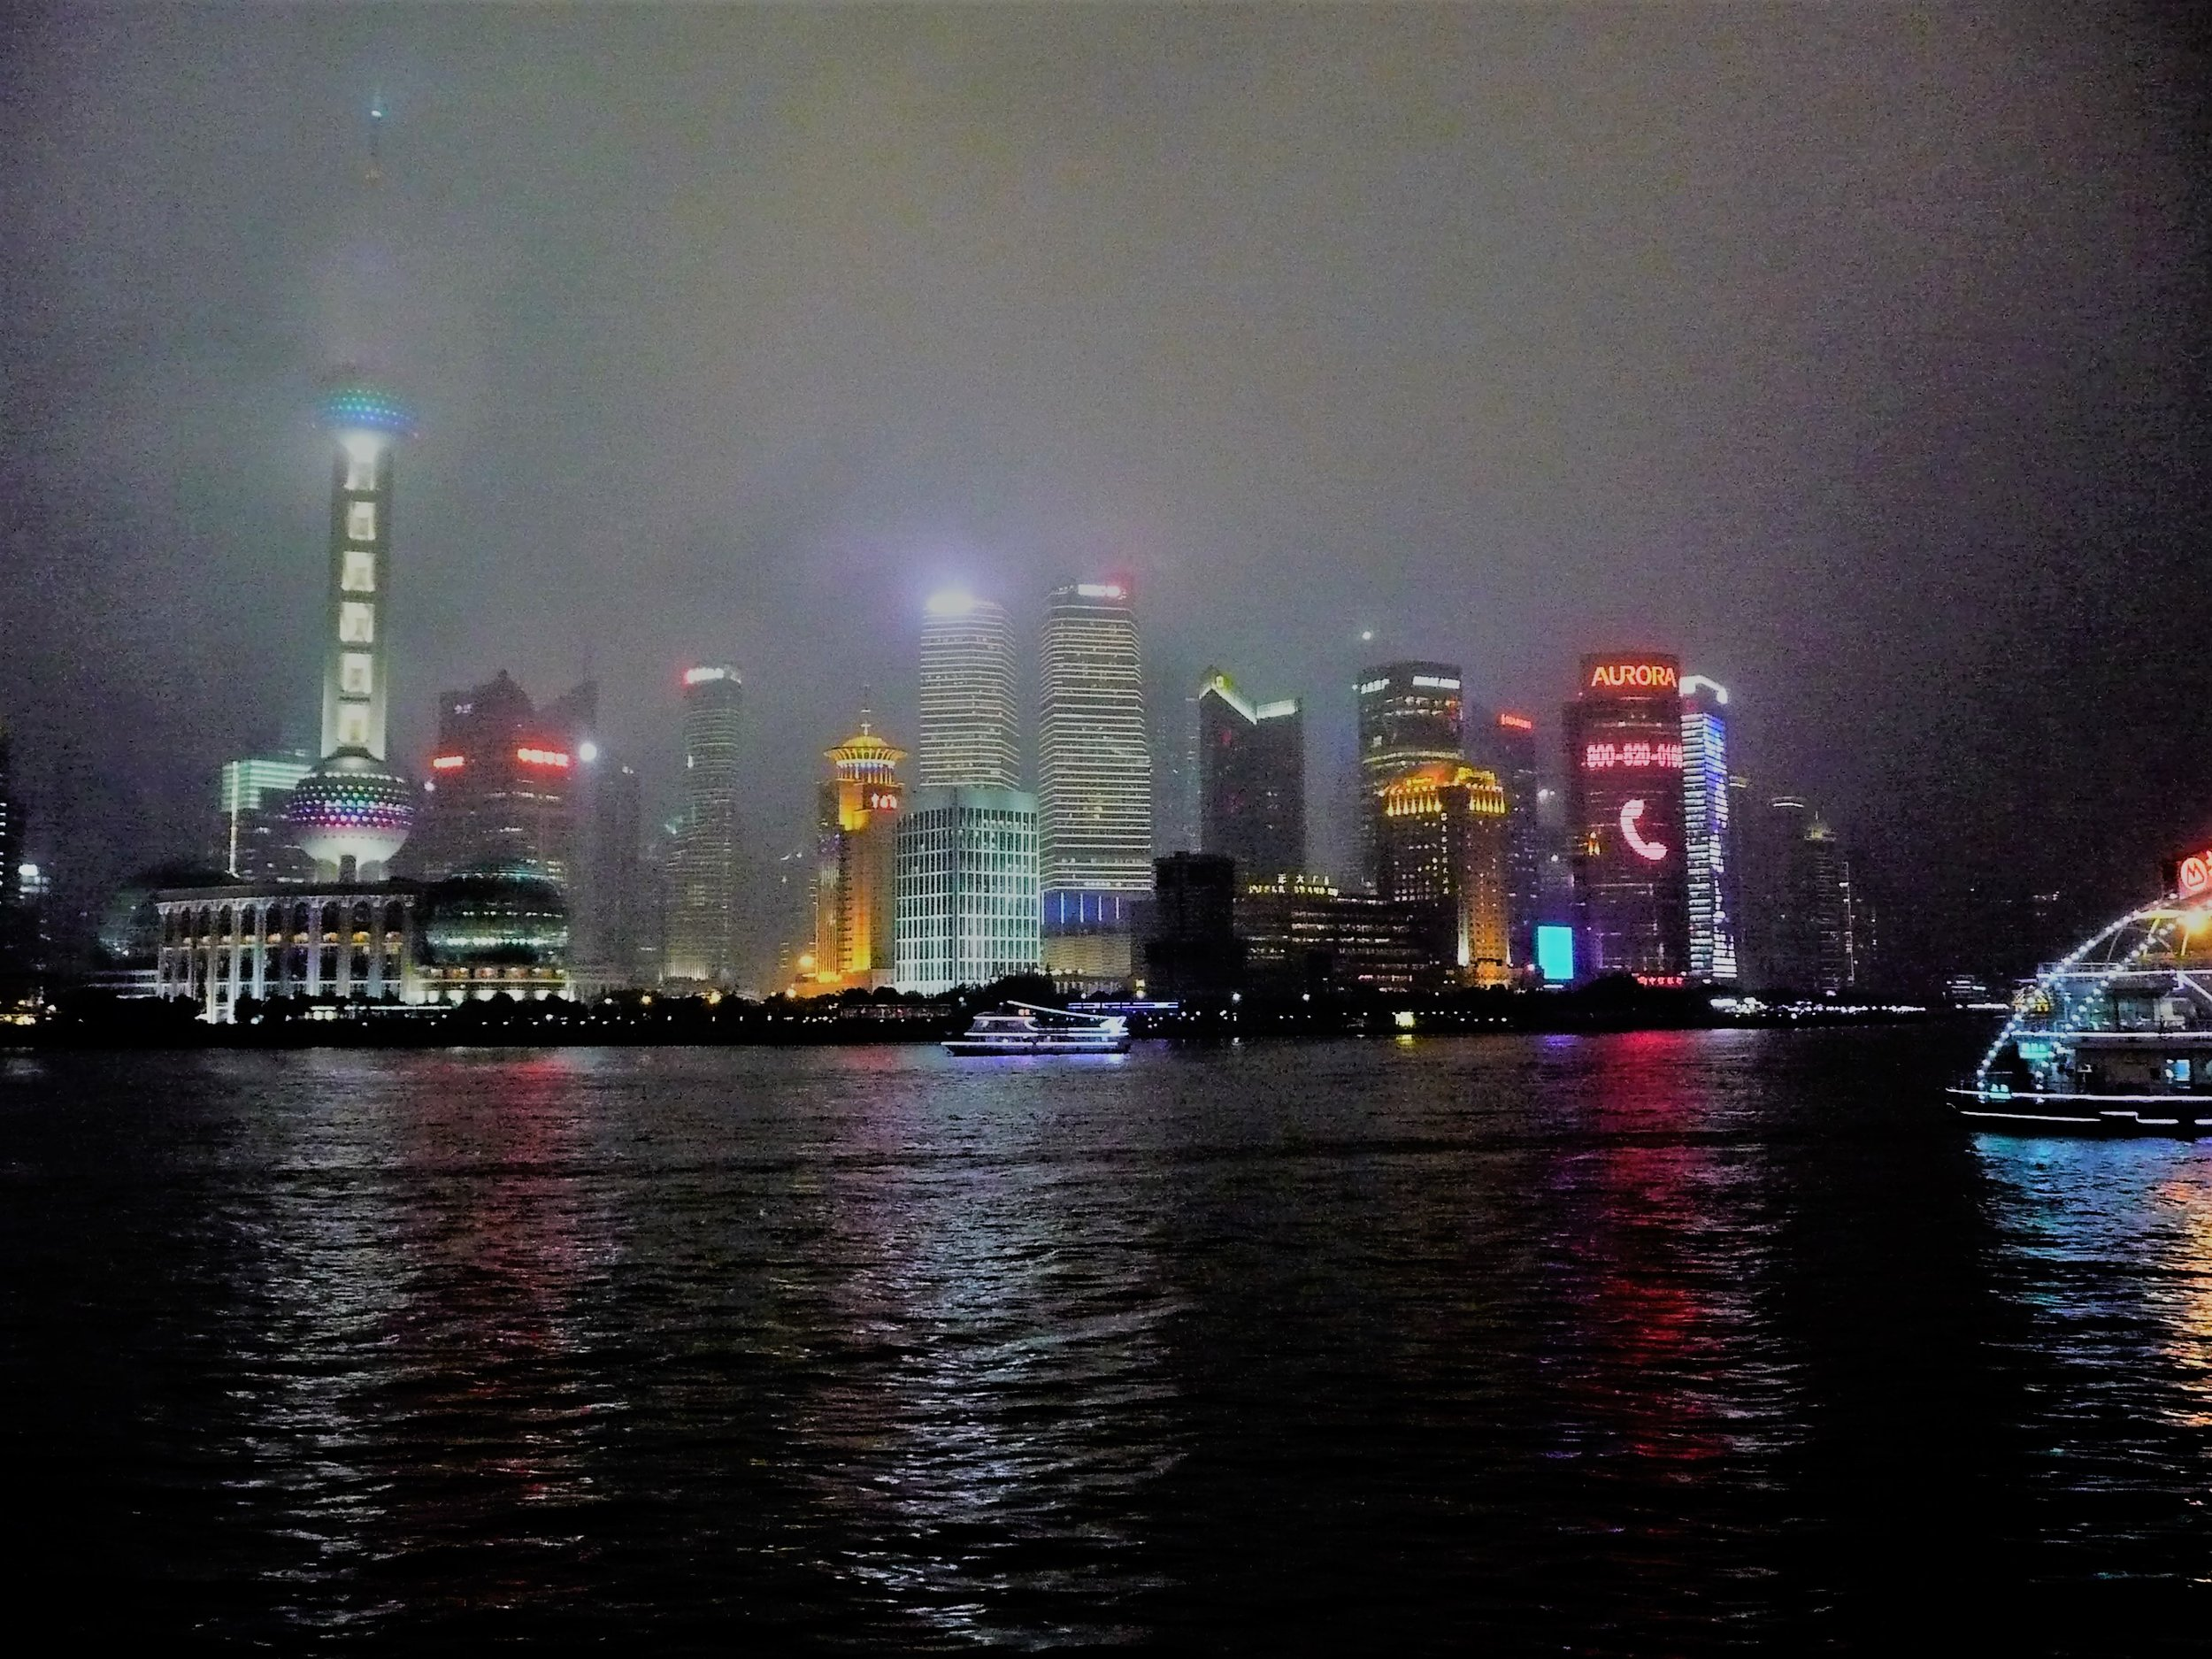 Shanghai Skyline (at night, in a storm)